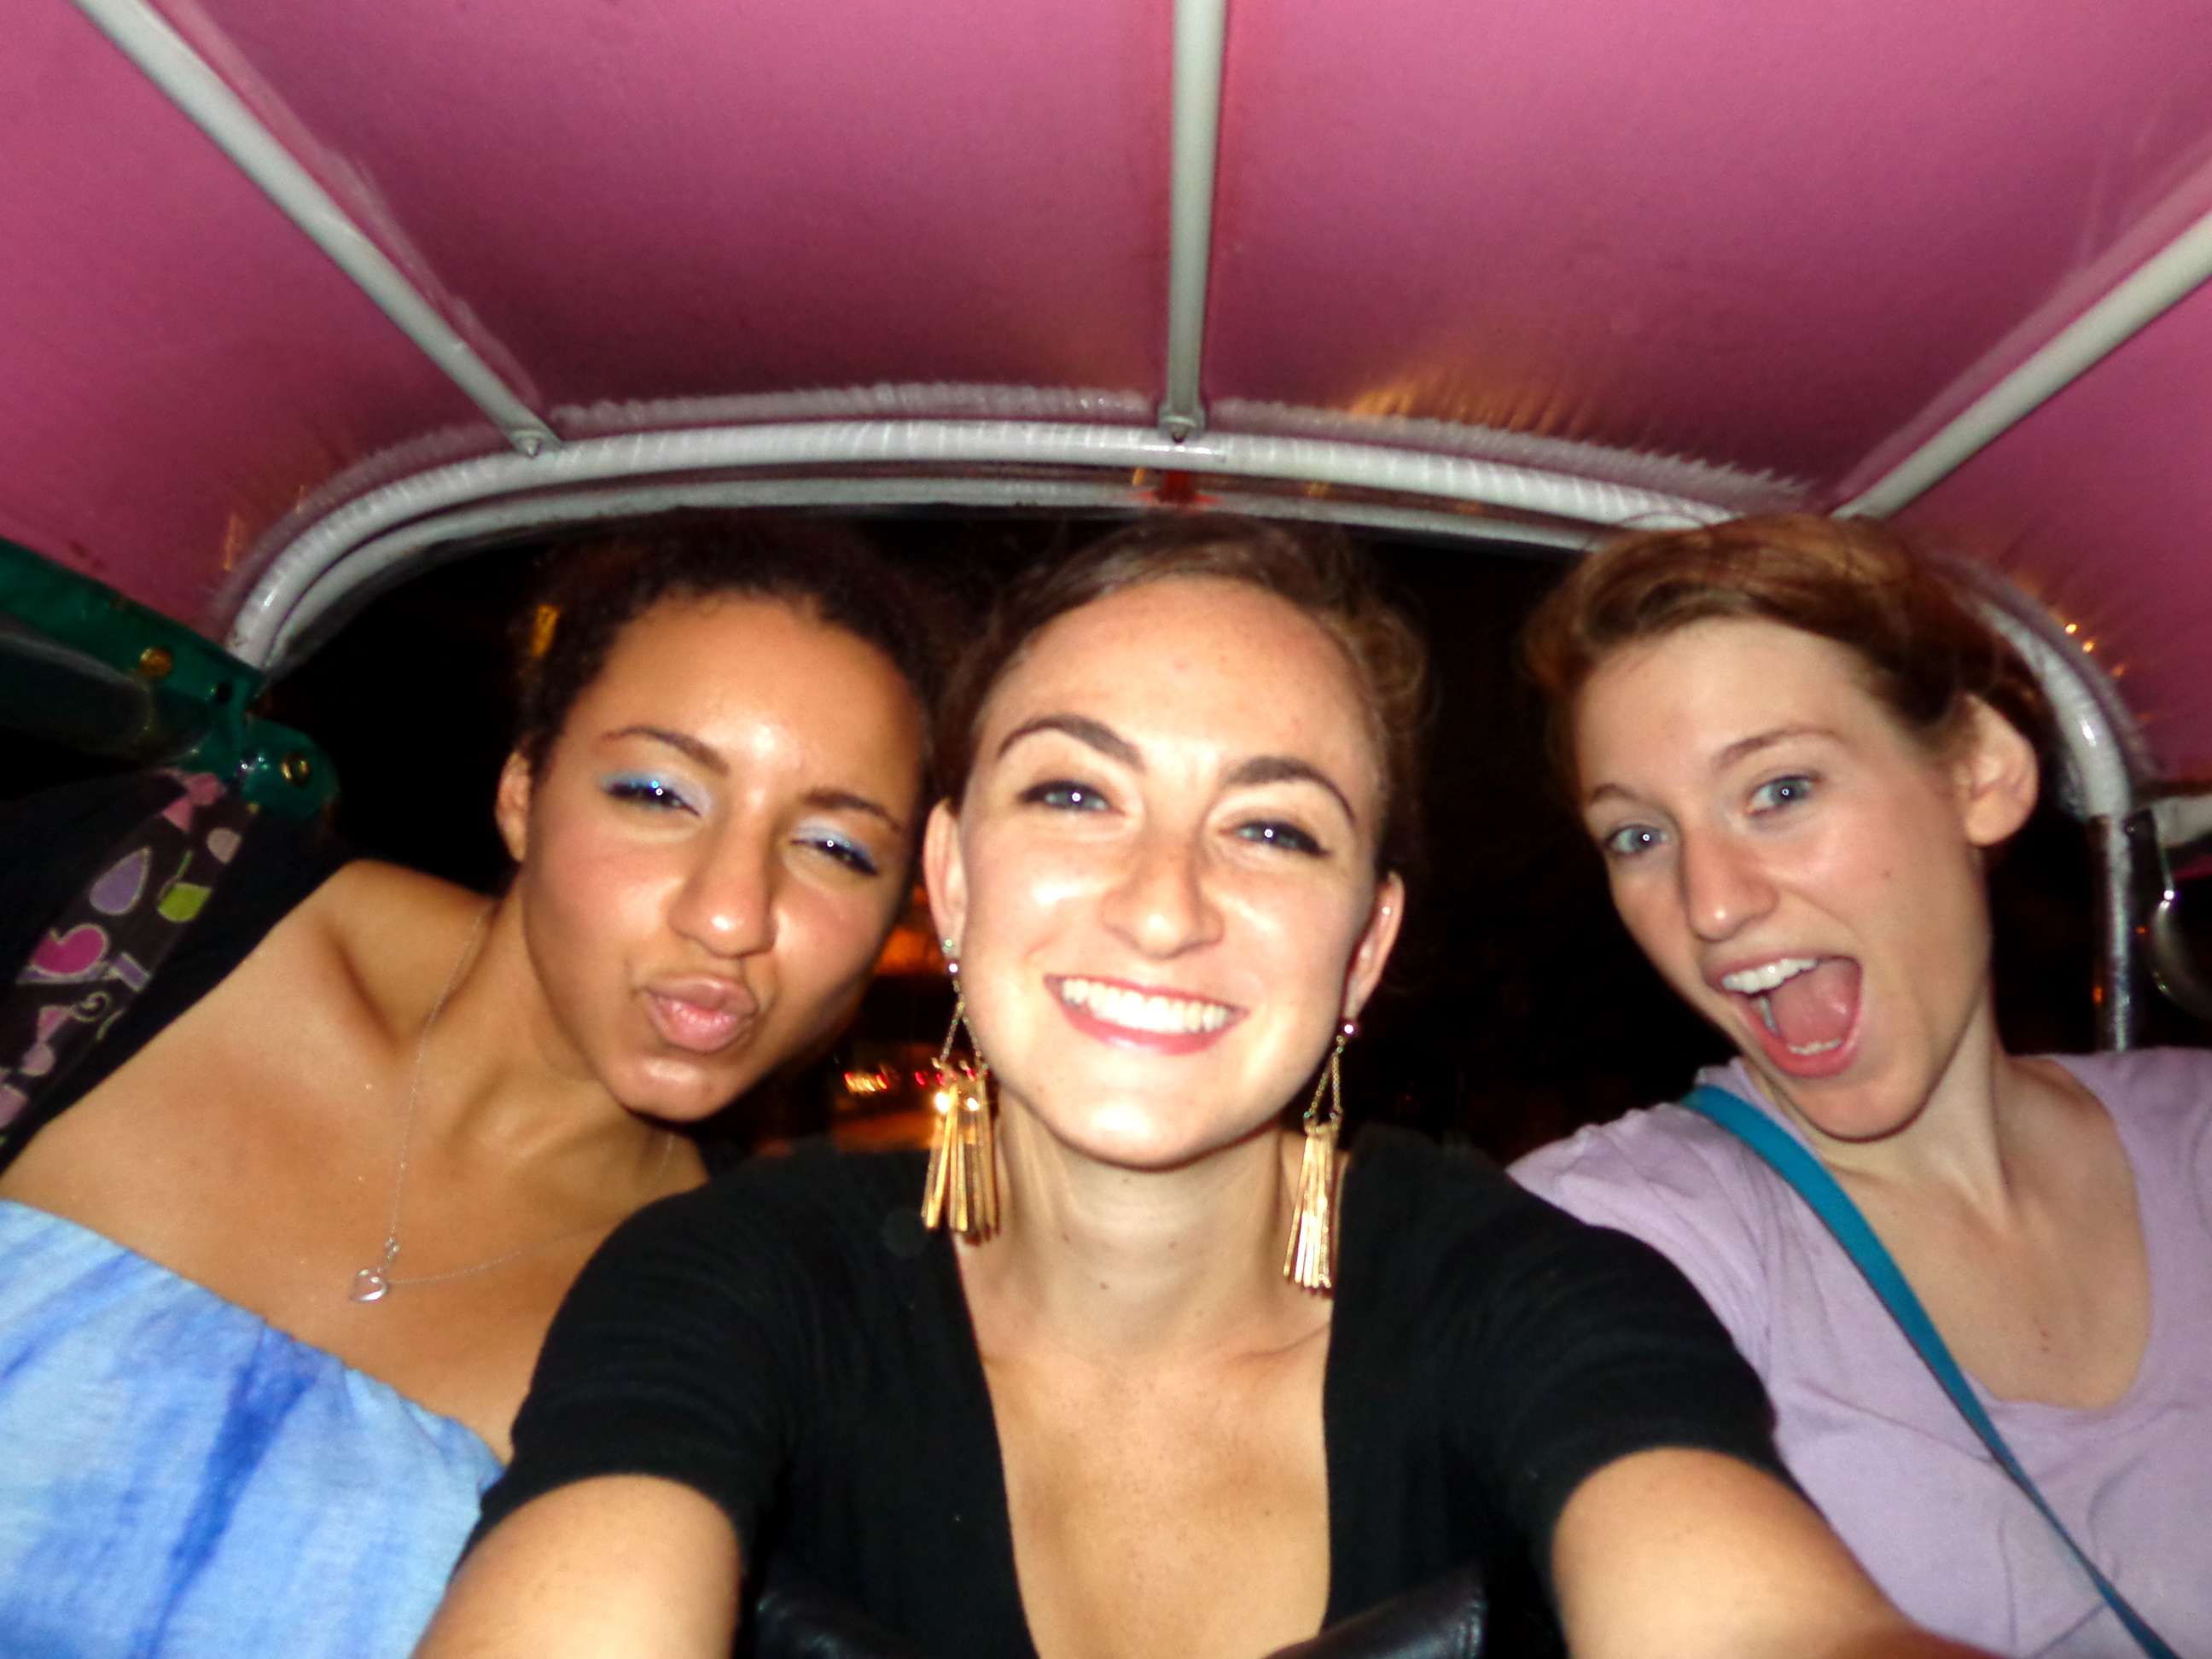 riding in a tuk tuk to party on khao san